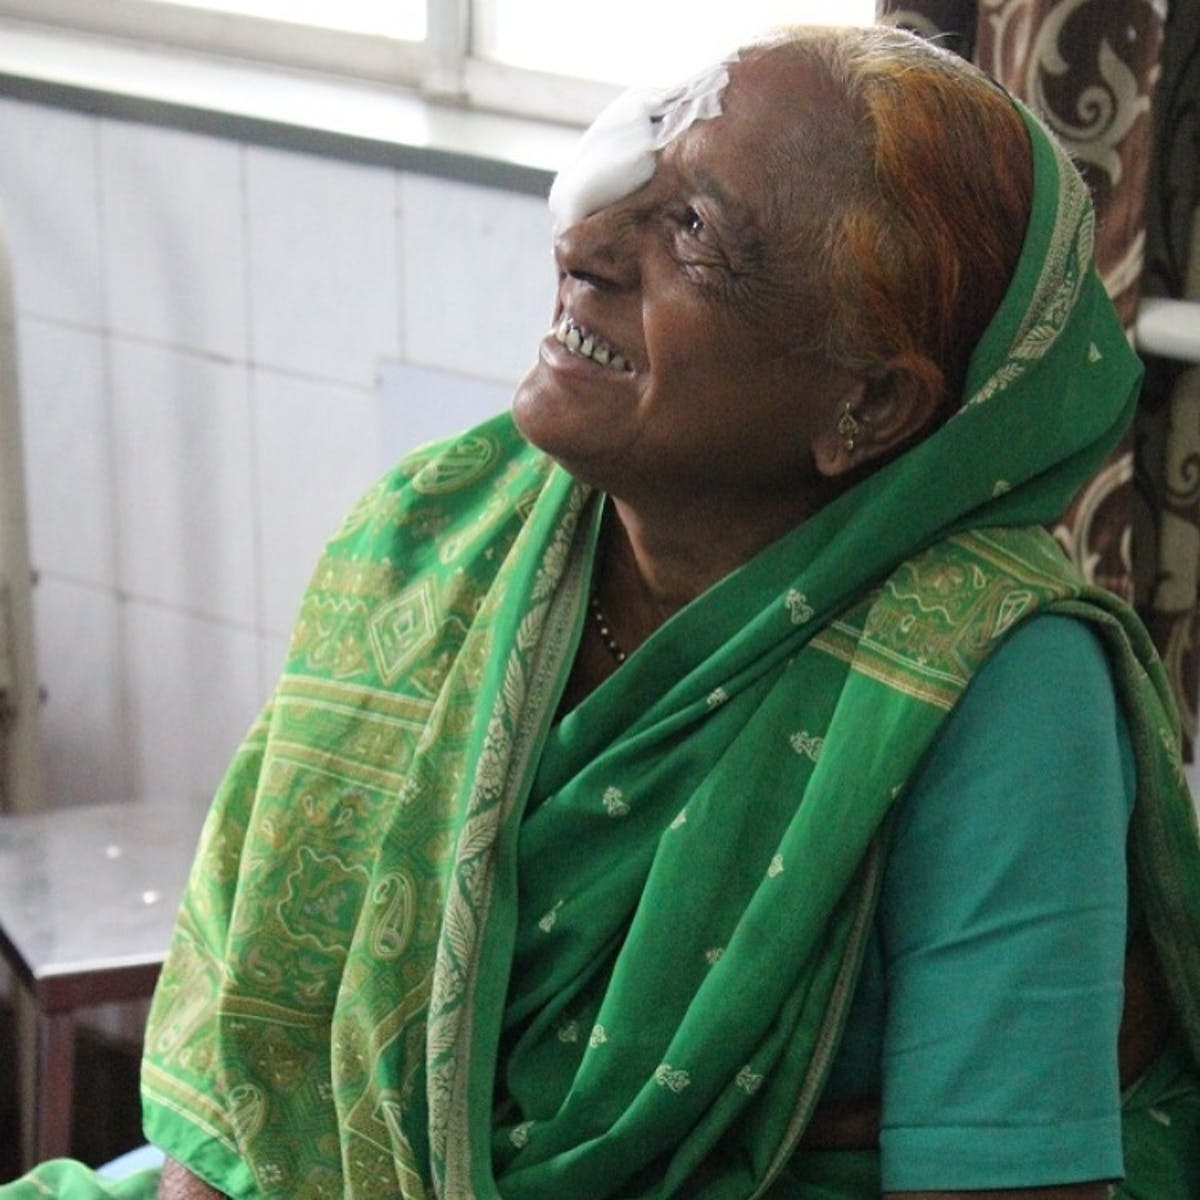 An elderly Indian woman wearing a green sari looks up after the removal of a cataract, an eye patch on her right eye